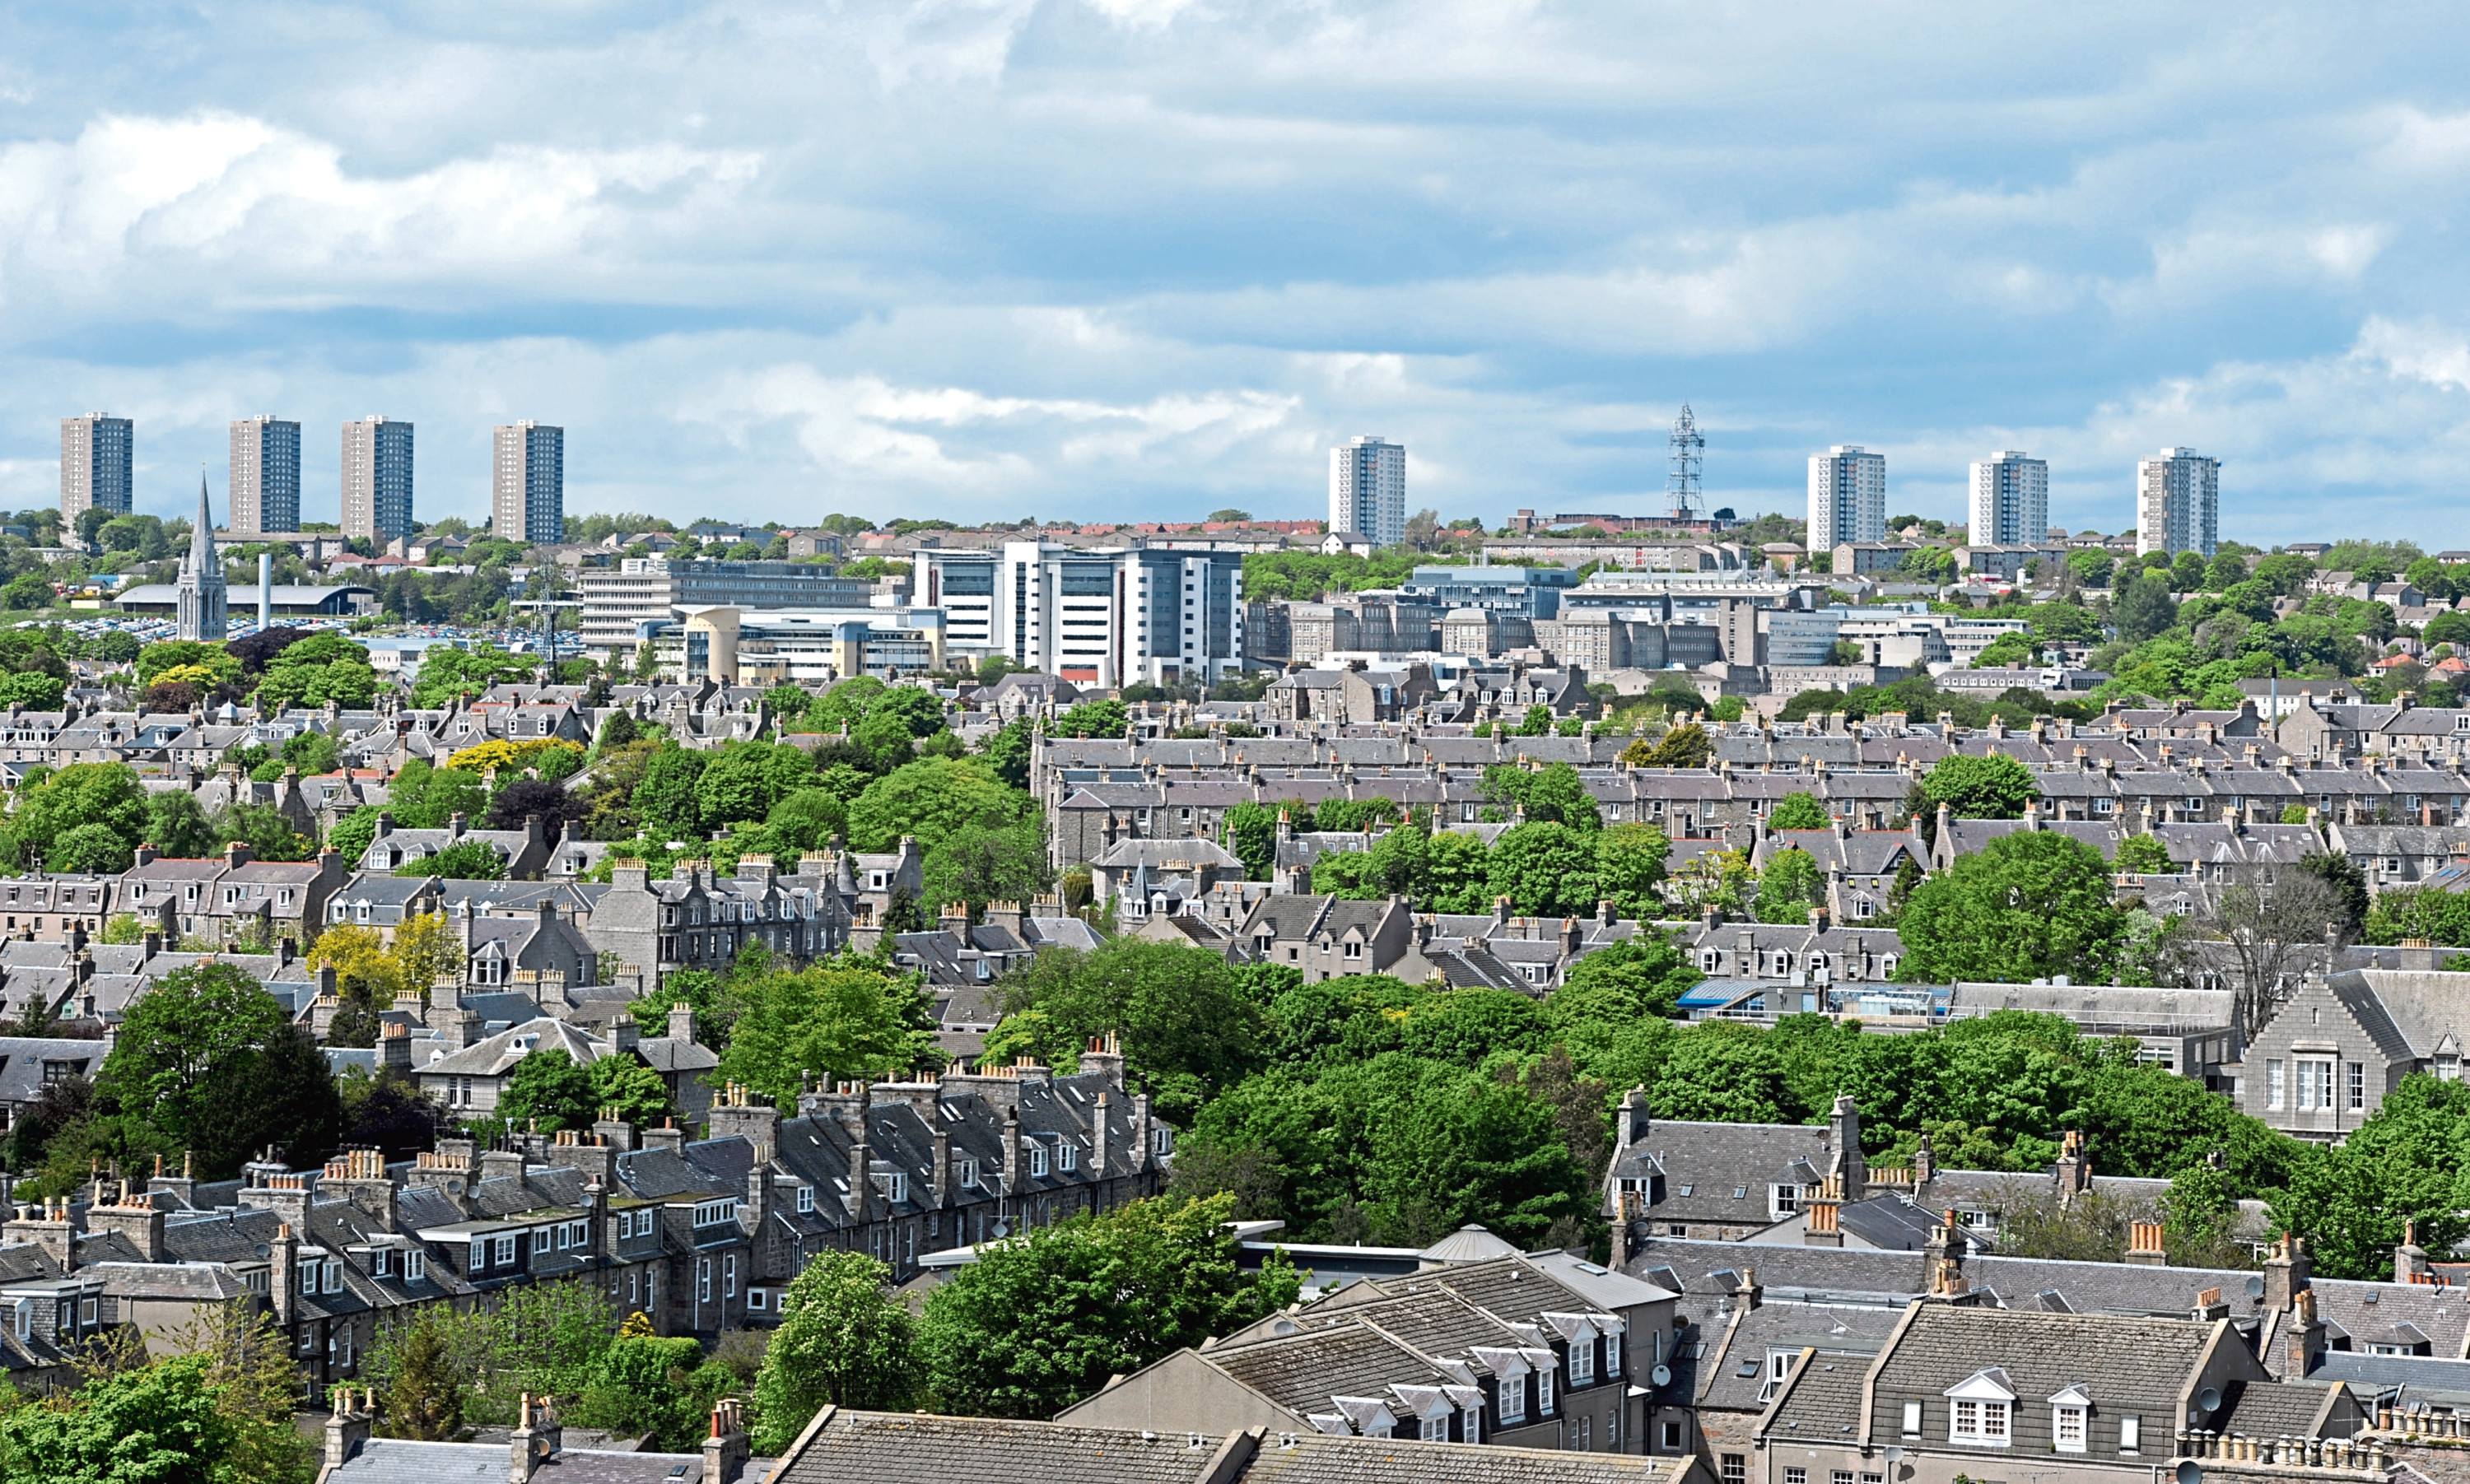 Councillors will consider a pilot scheme to bring long-term empty homes back into use